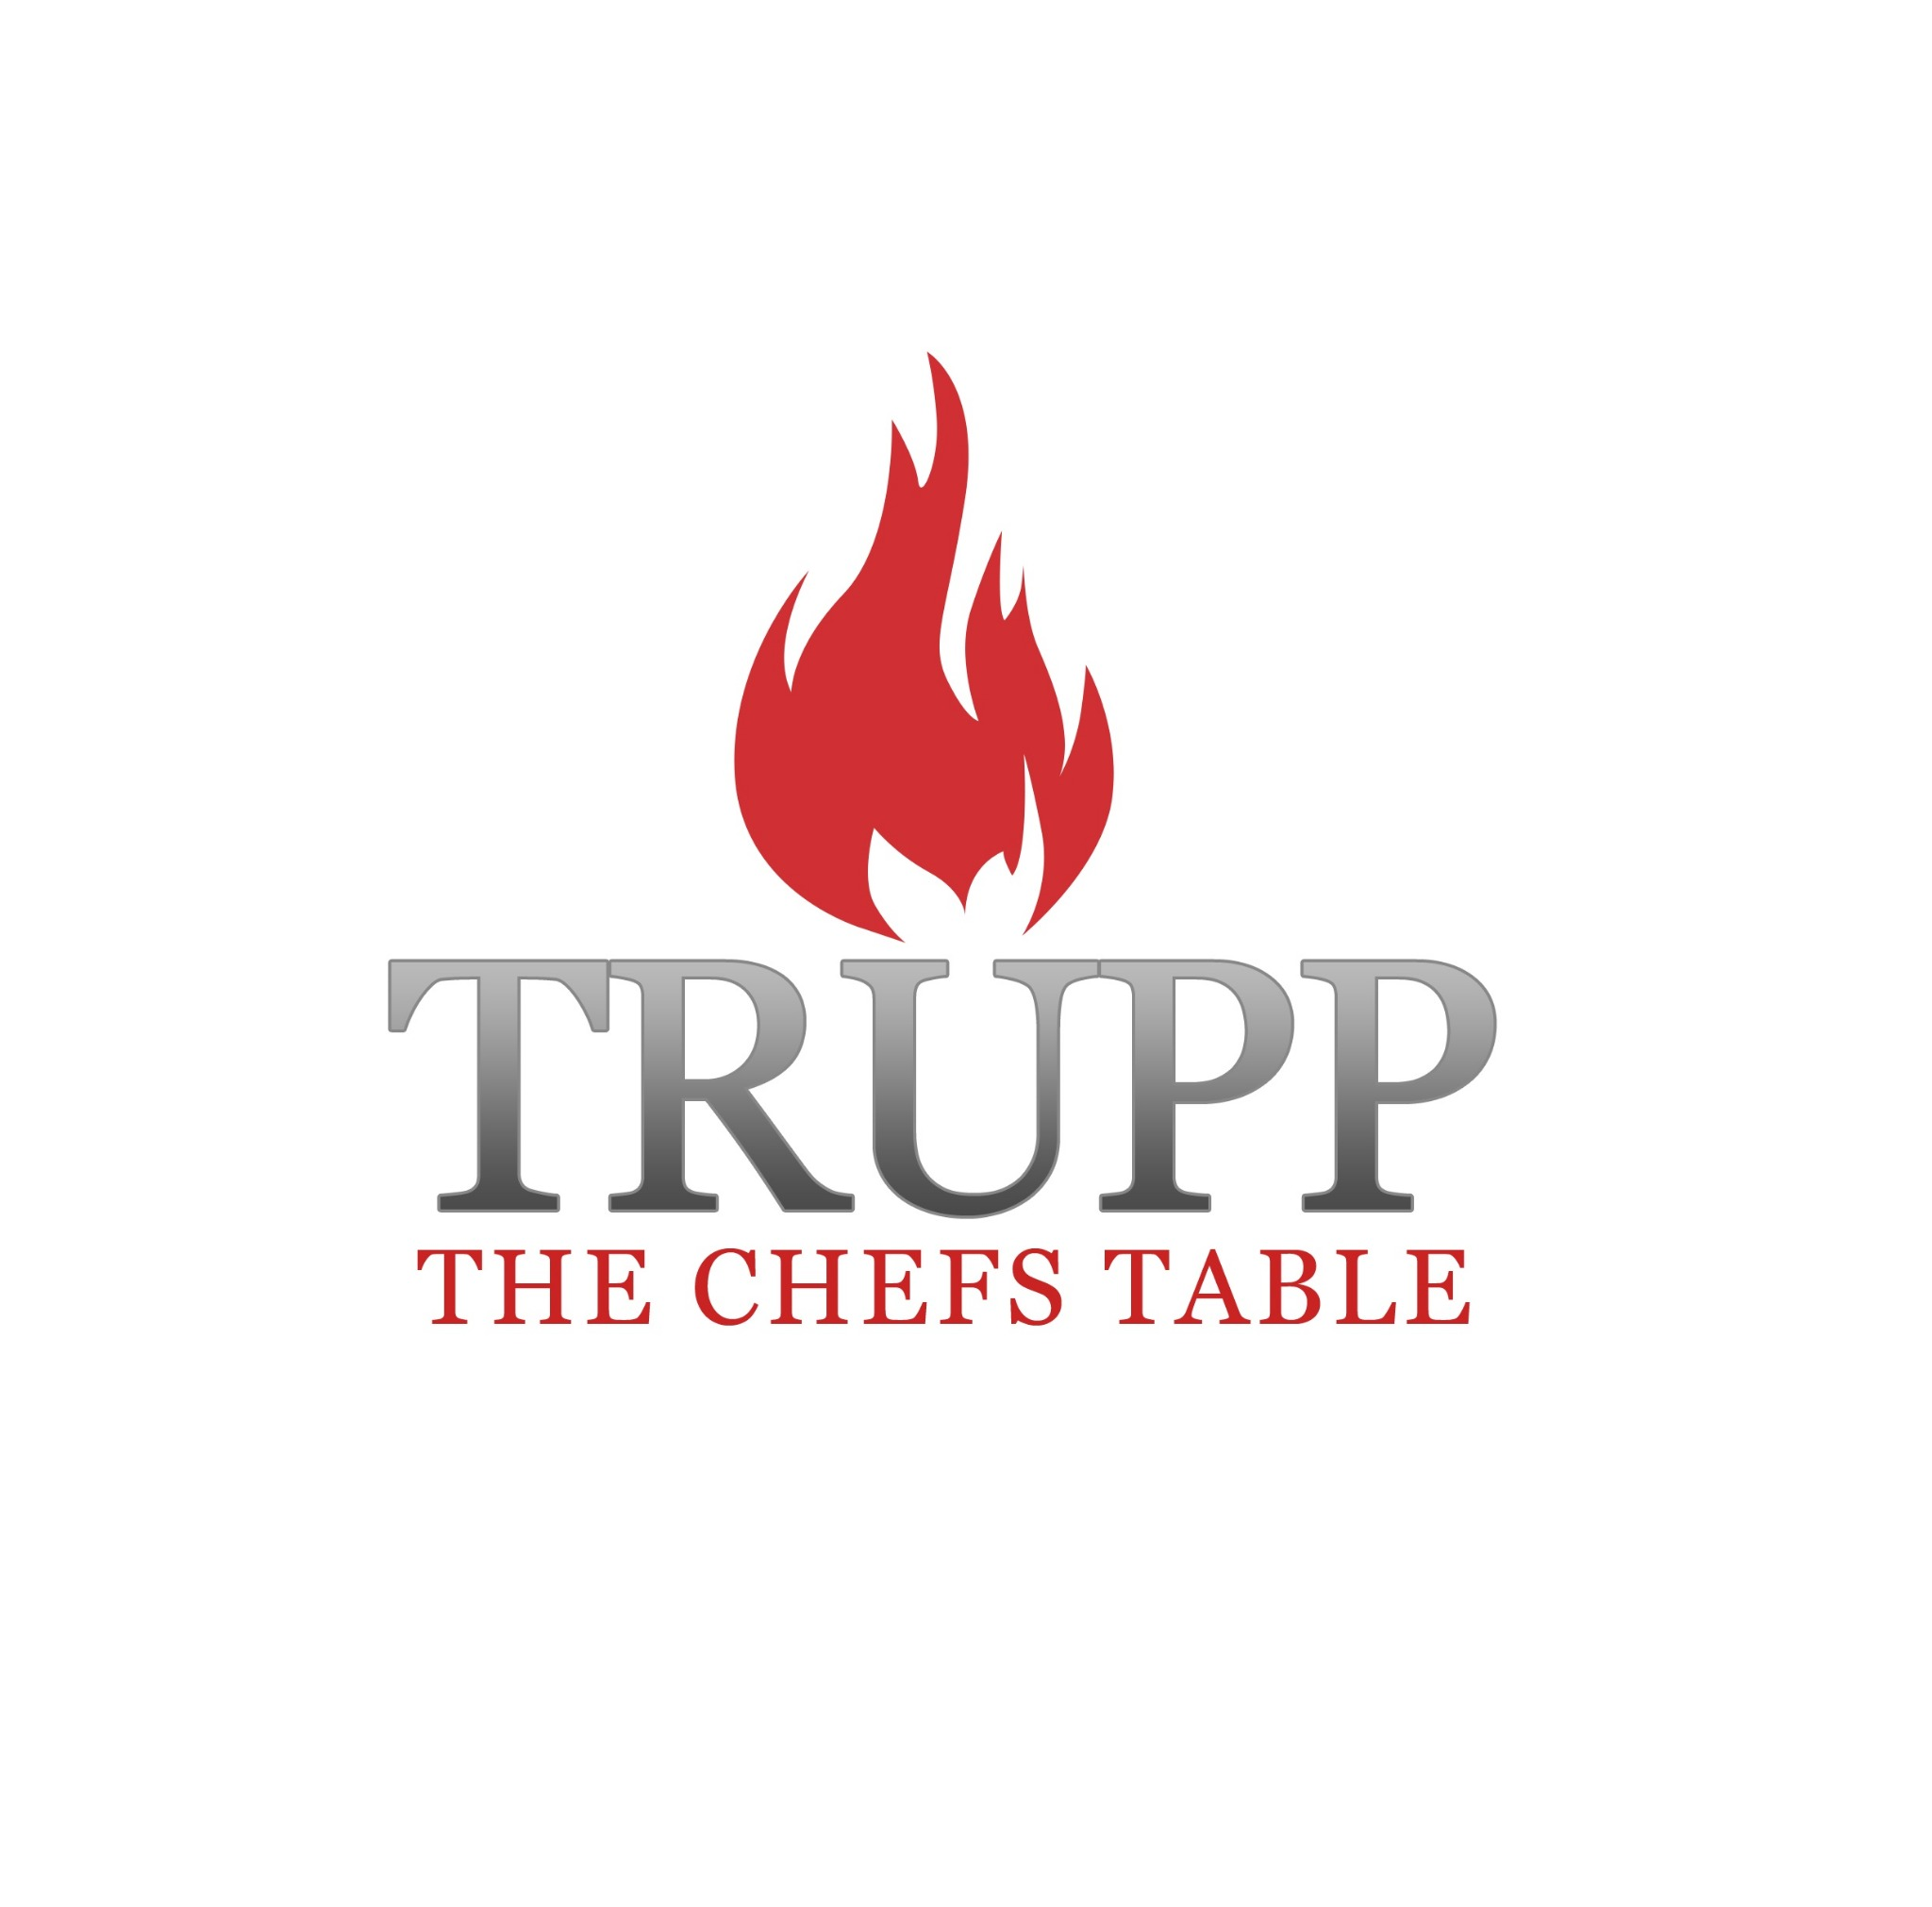 Trupp-The Chefs Table Cooking School